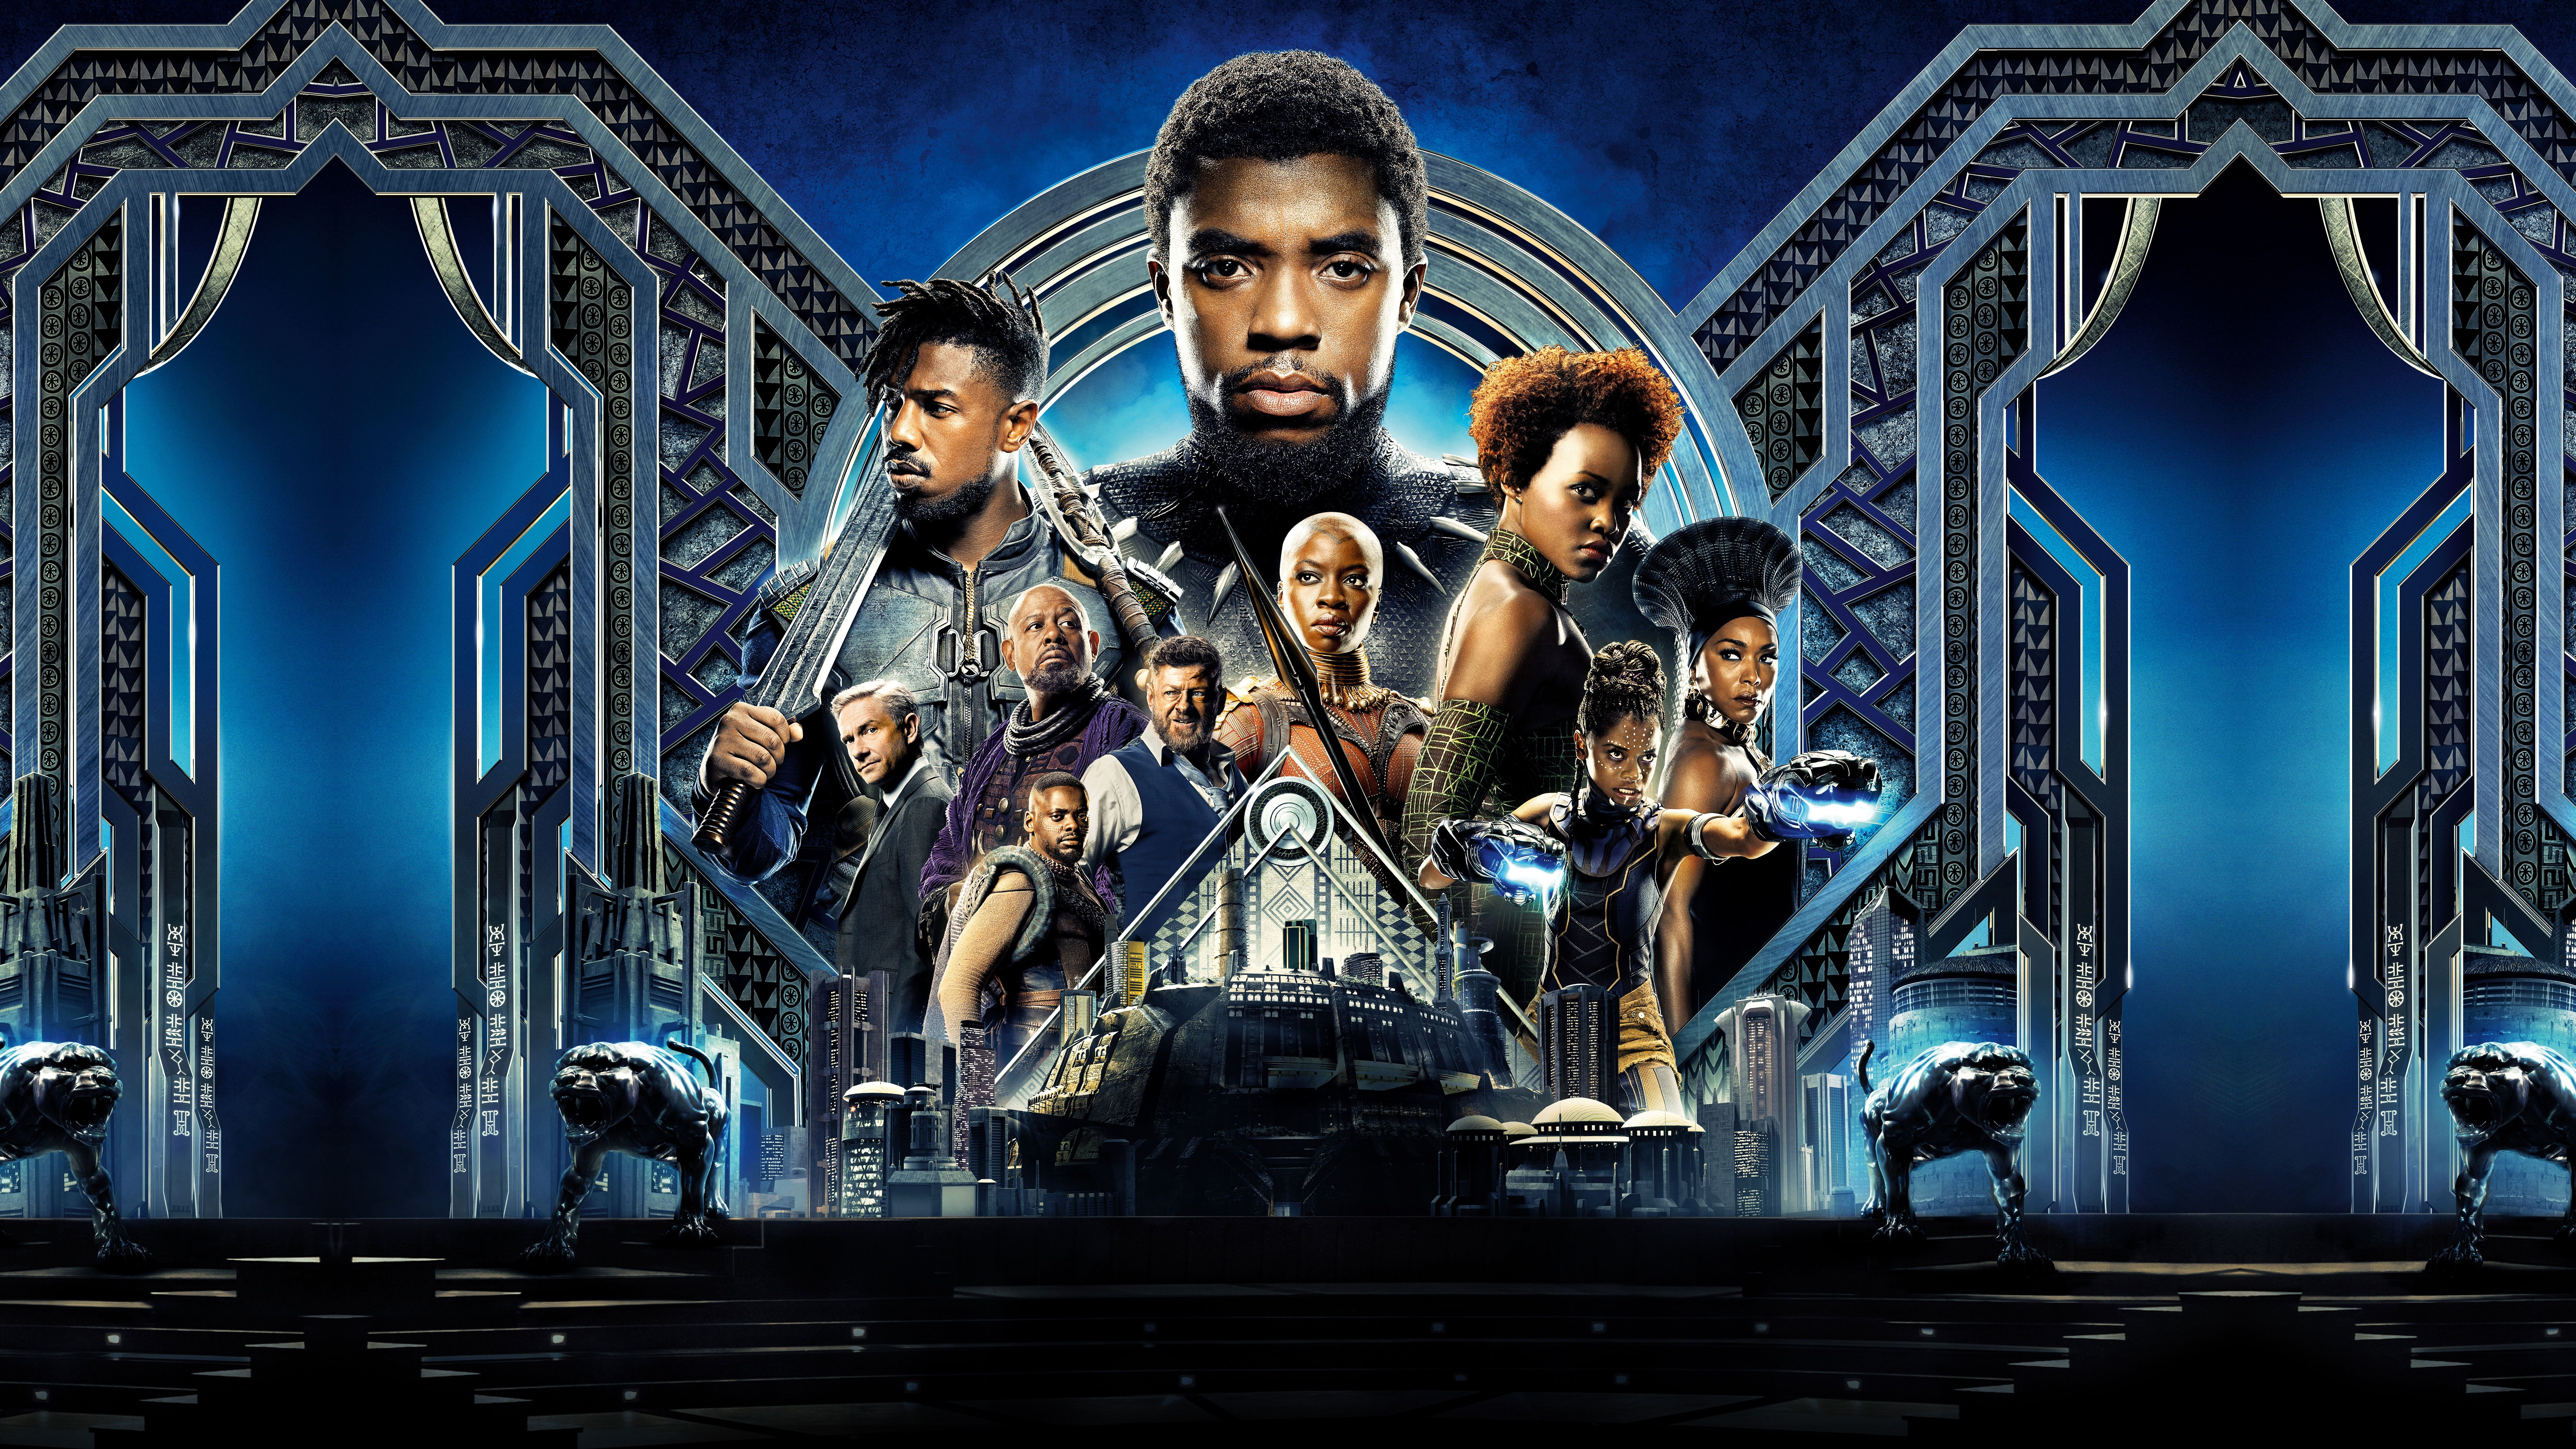 Black Panther Marvel Movie Wallpapers Top Free Black Panther Marvel Movie Backgrounds Wallpaperaccess